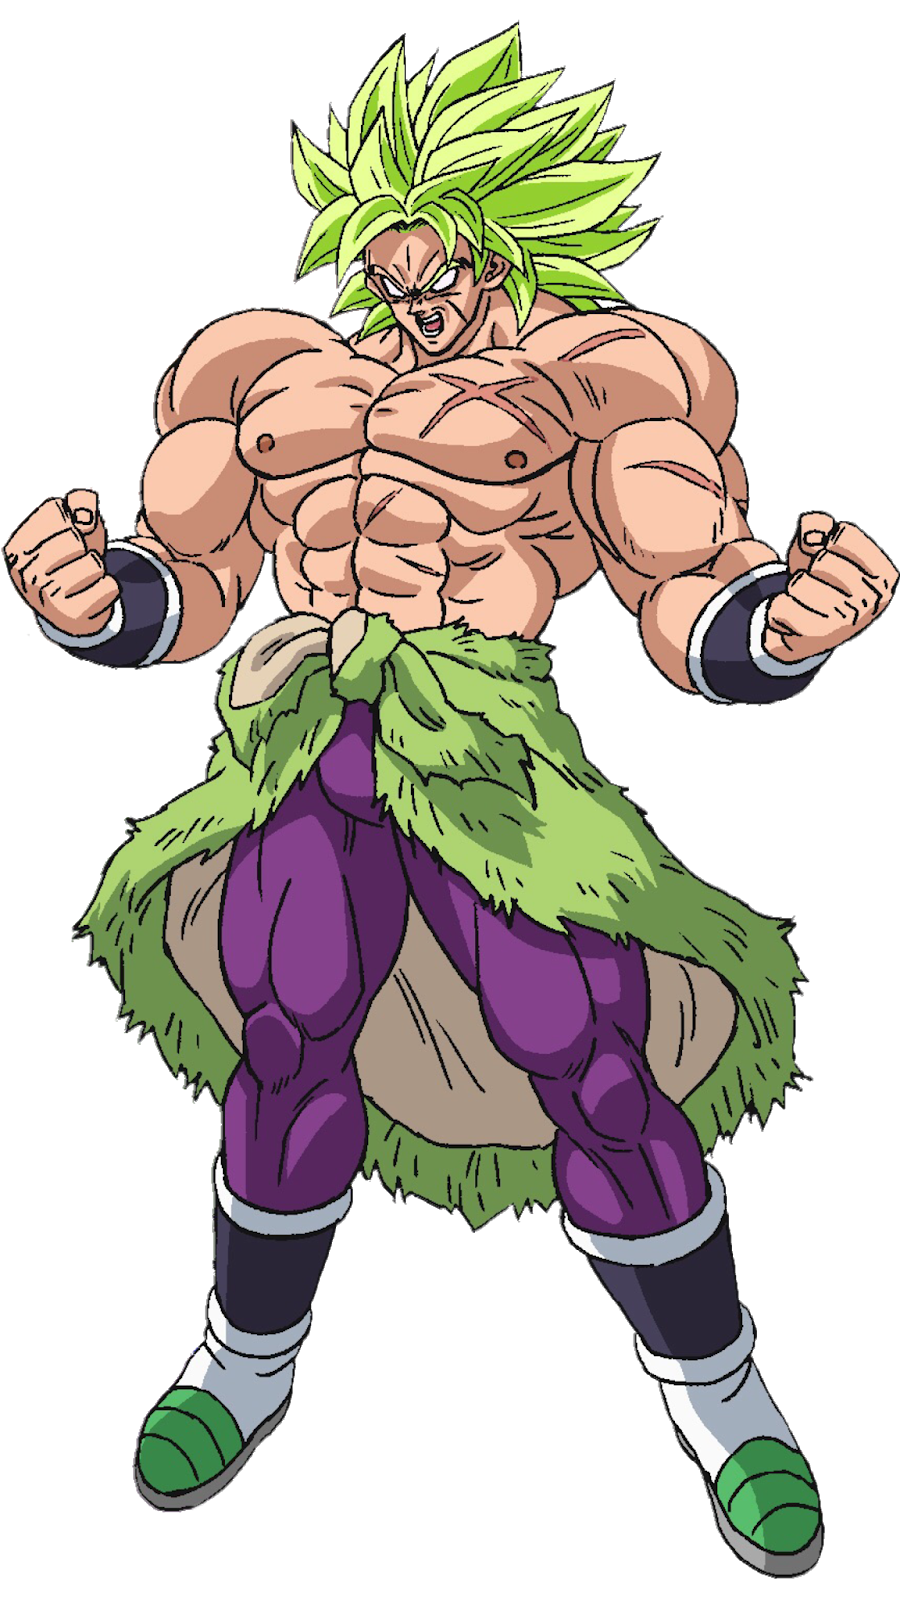 Renders Backgrounds Logos Broly Dragon Ball Super